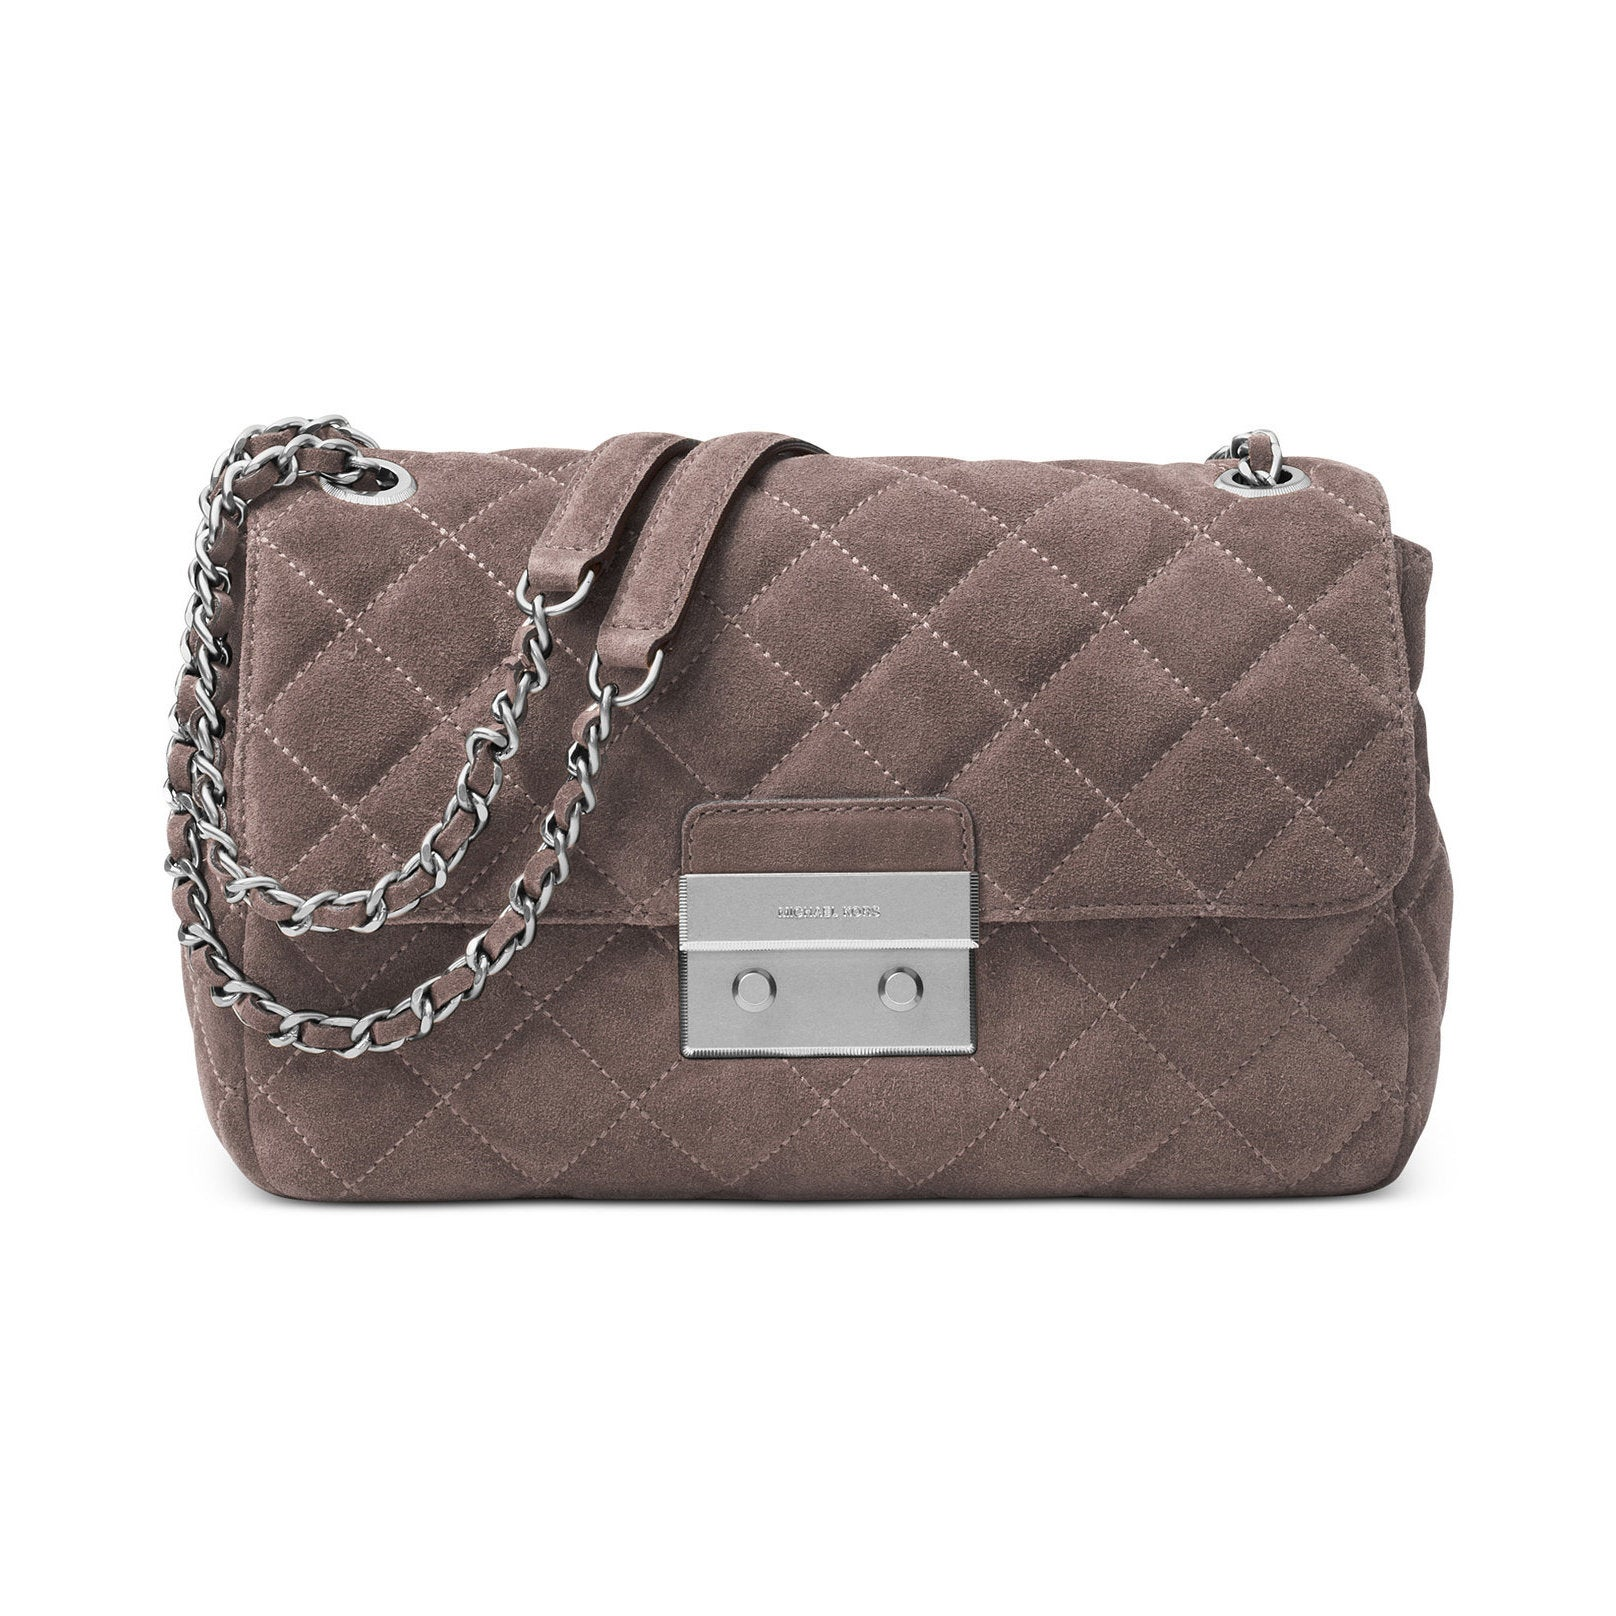 c1685ded3830 Shop MICHAEL Michael Kors Sloan Grey Leather Large Quilted Shoulder Flap  Cinder Bag - Free Shipping Today - Overstock - 13817680